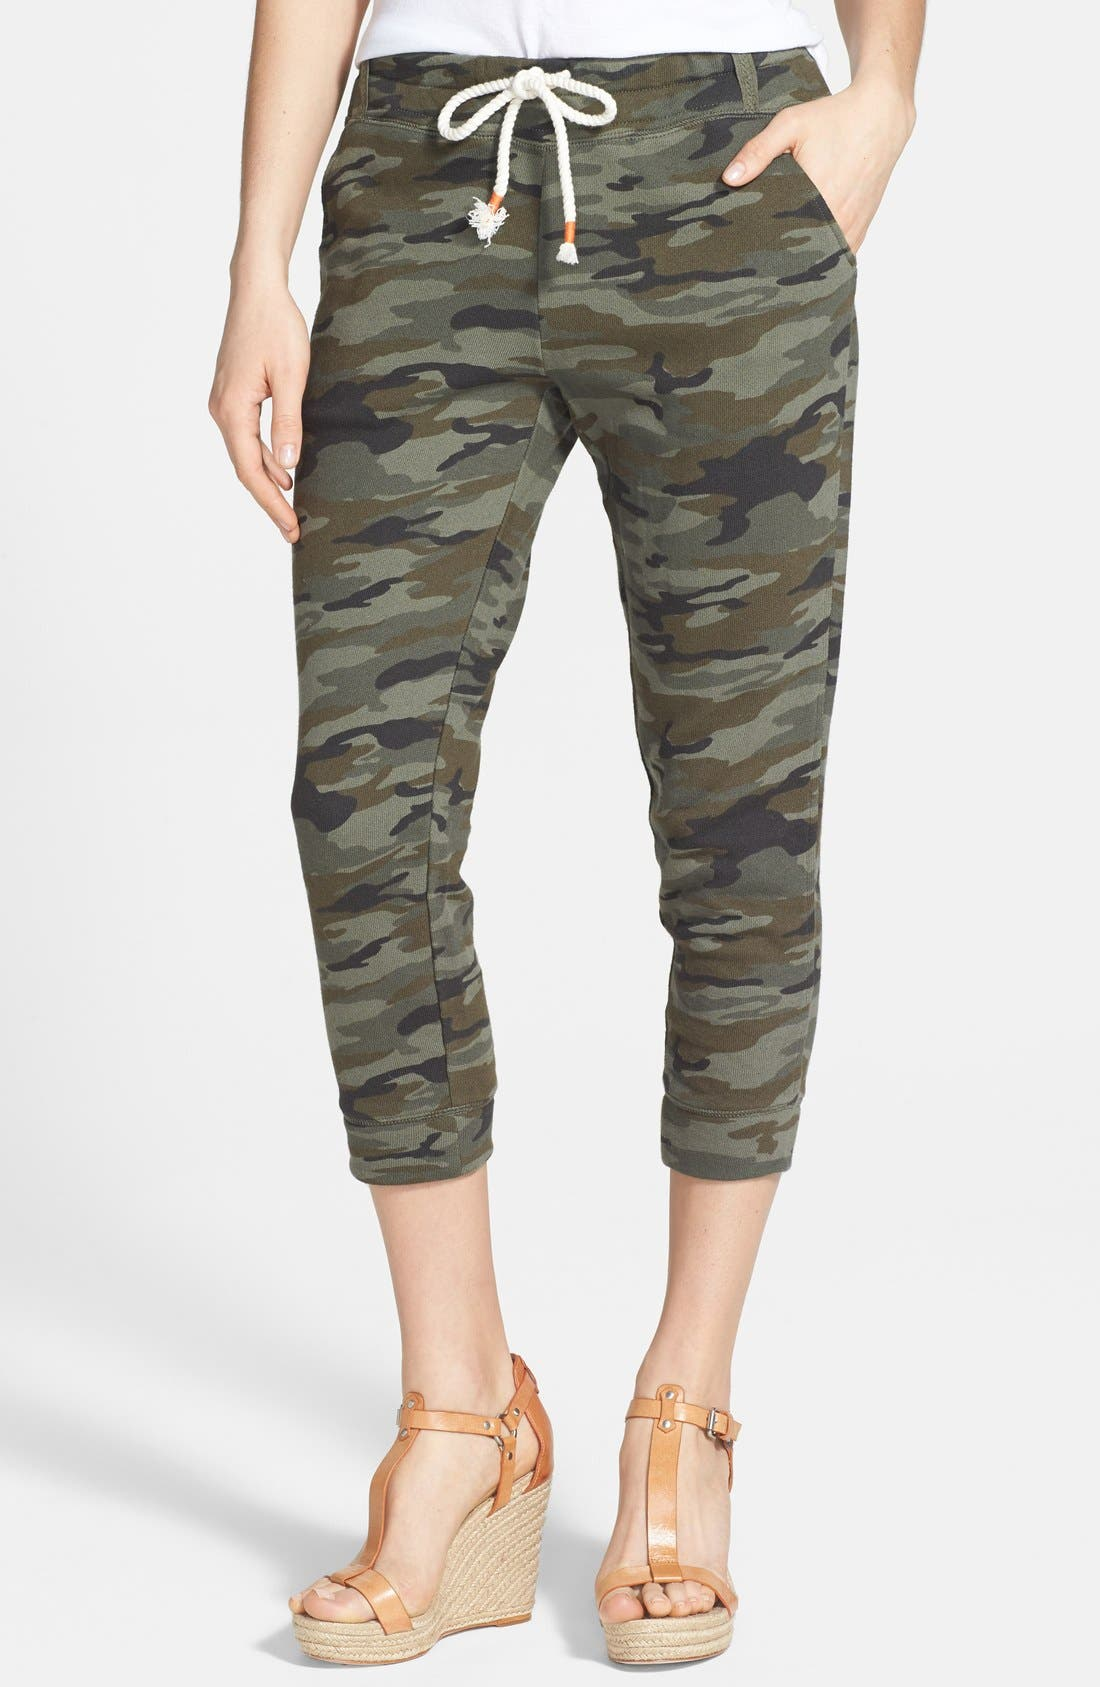 Alternate Image 1 Selected - Lucky Brand Camo Print Crop Skinny Knit Pants